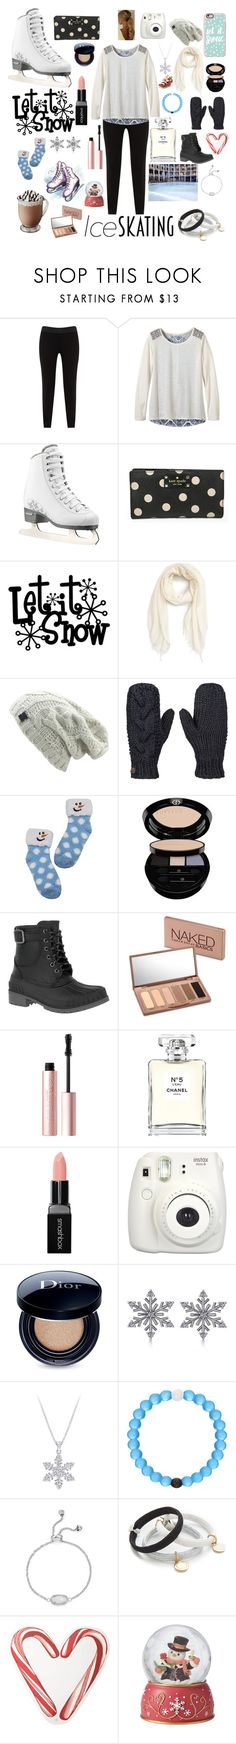 """Ice skating⛸💗"" by reecedwyer14 ❤ liked on Polyvore featuring JunaRose, prAna, Kate Spade, Nordstrom, Roxy, Giorgio Armani, Kamik, Urban Decay, Too Faced Cosmetics and Chanel"